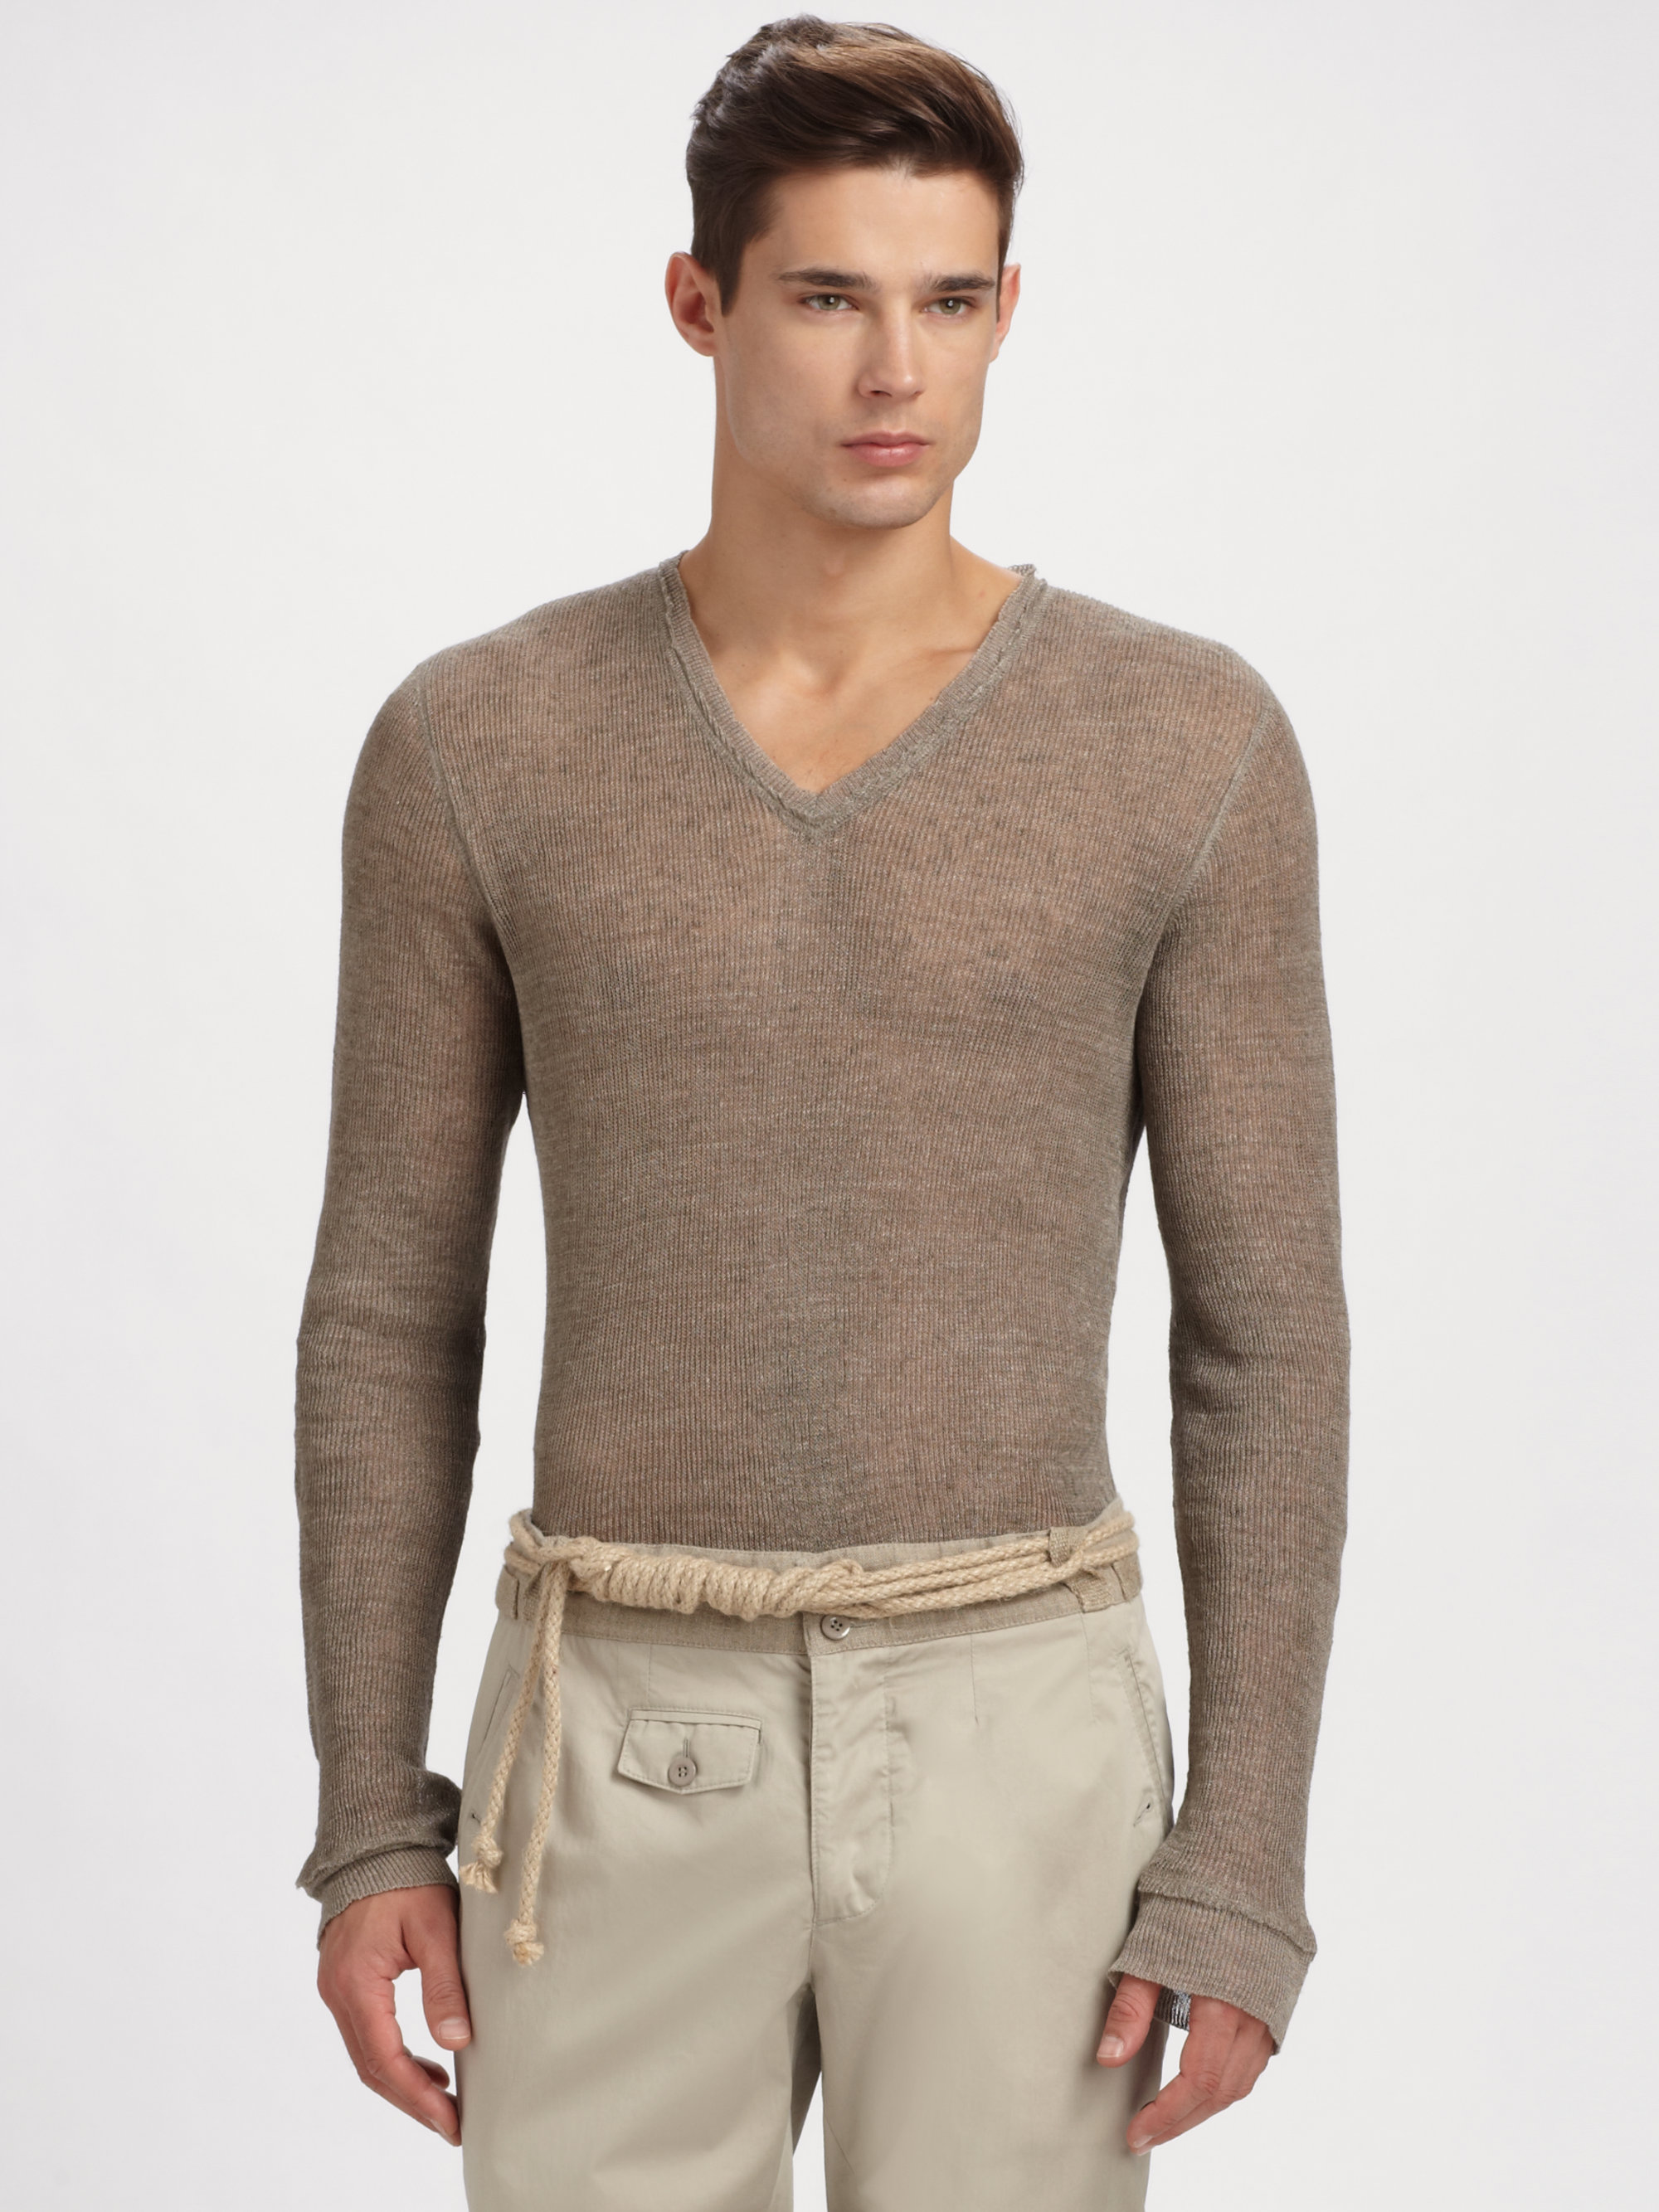 Dolce & gabbana Linen Sweater in Natural for Men | Lyst